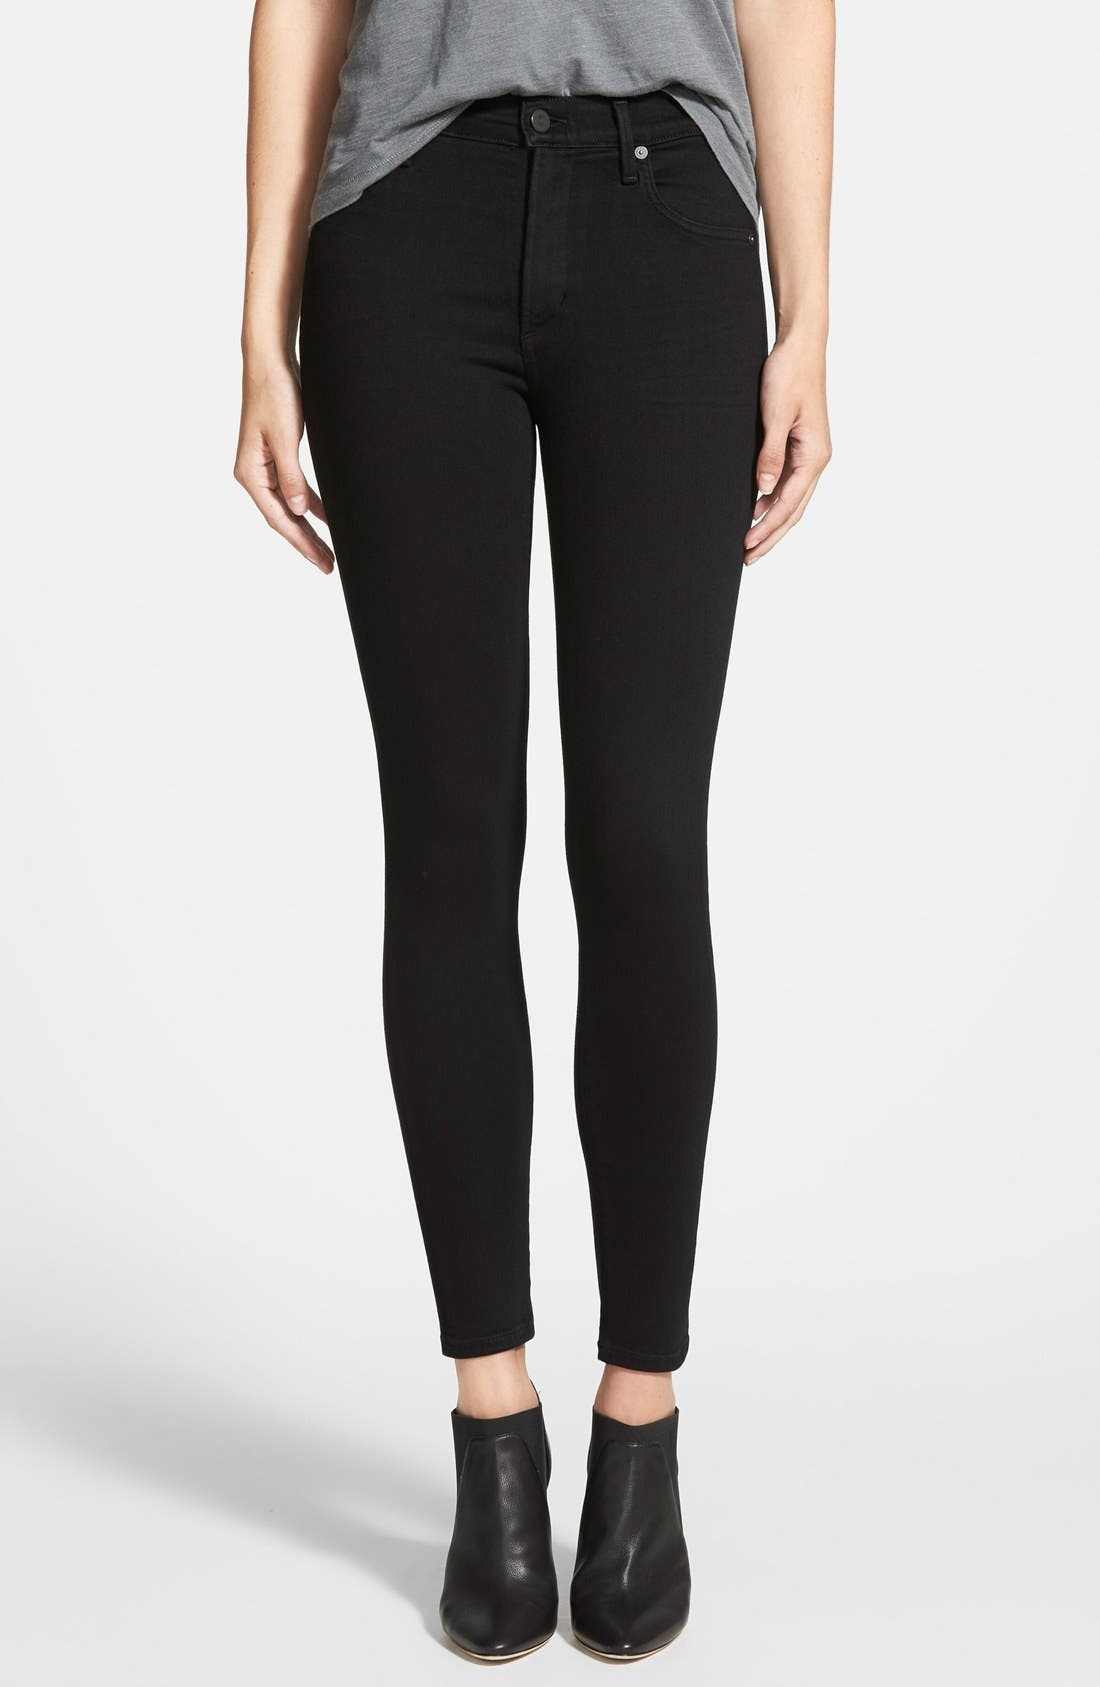 'Rocket' High Rise Skinny Jeans,                         Main,                         color, Axel